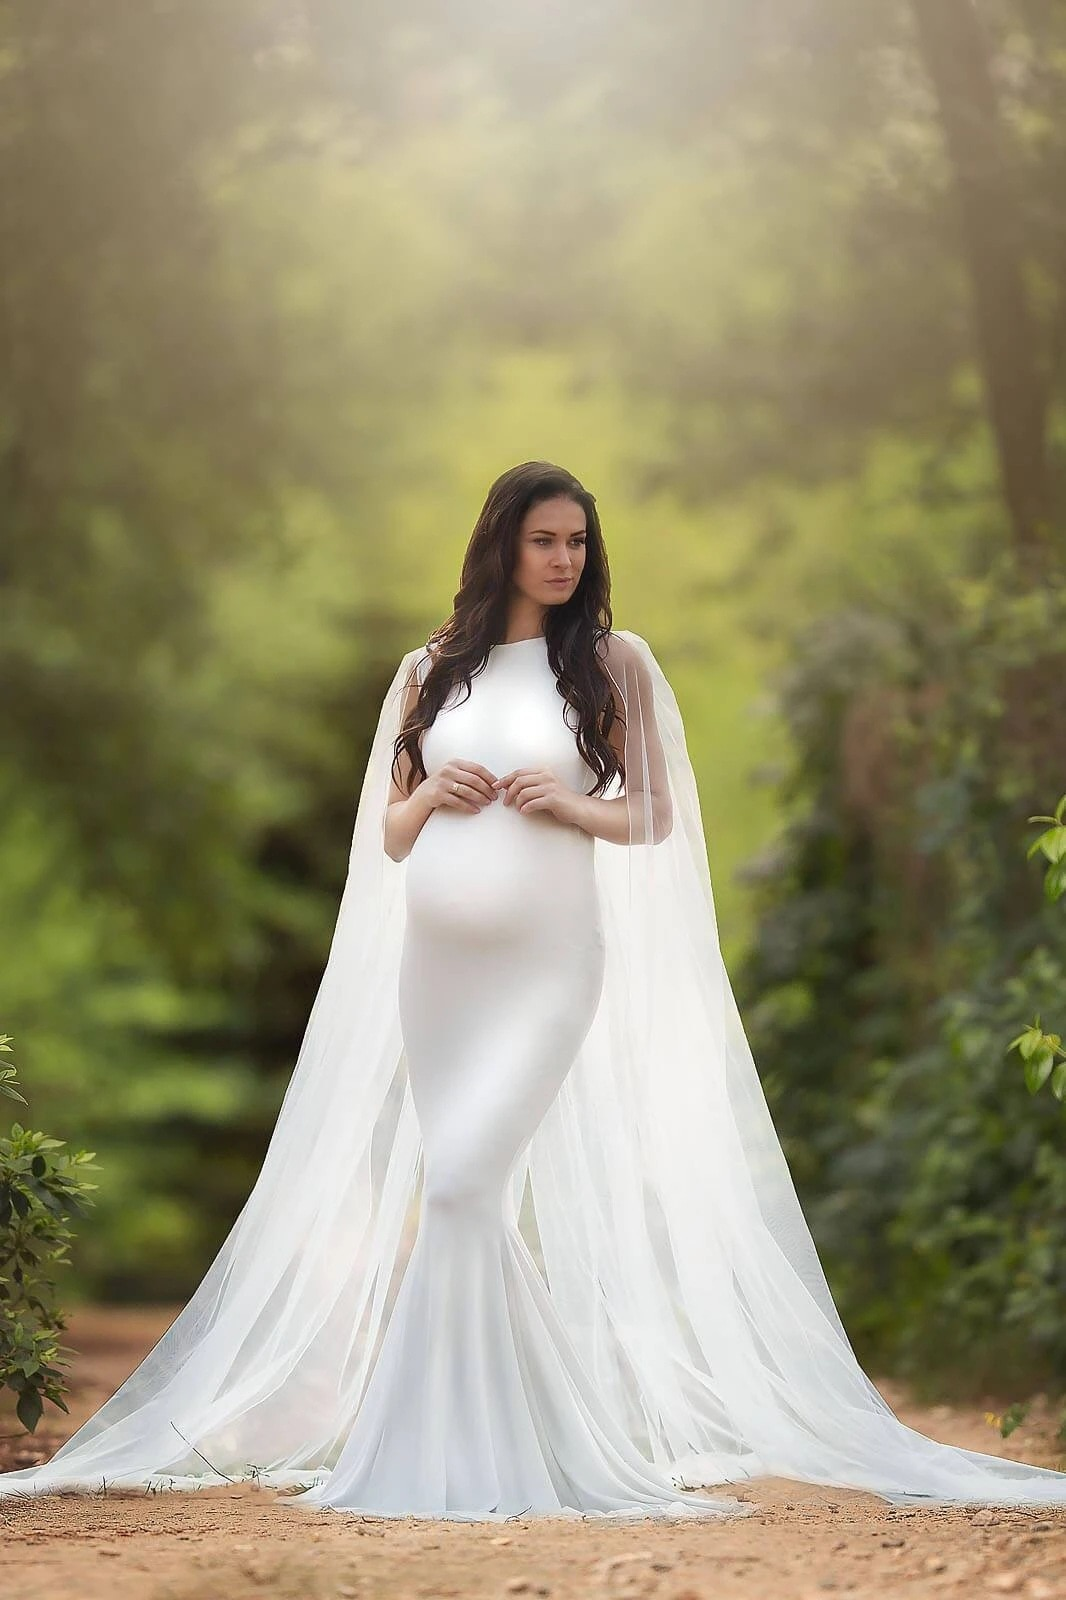 Tulle Shawl Maternity Dresses For Photo Shoot Sexy Fancy Pregnancy Maxi Gown Elegence Long Pregnant Women Photography Props 2021 enlarge